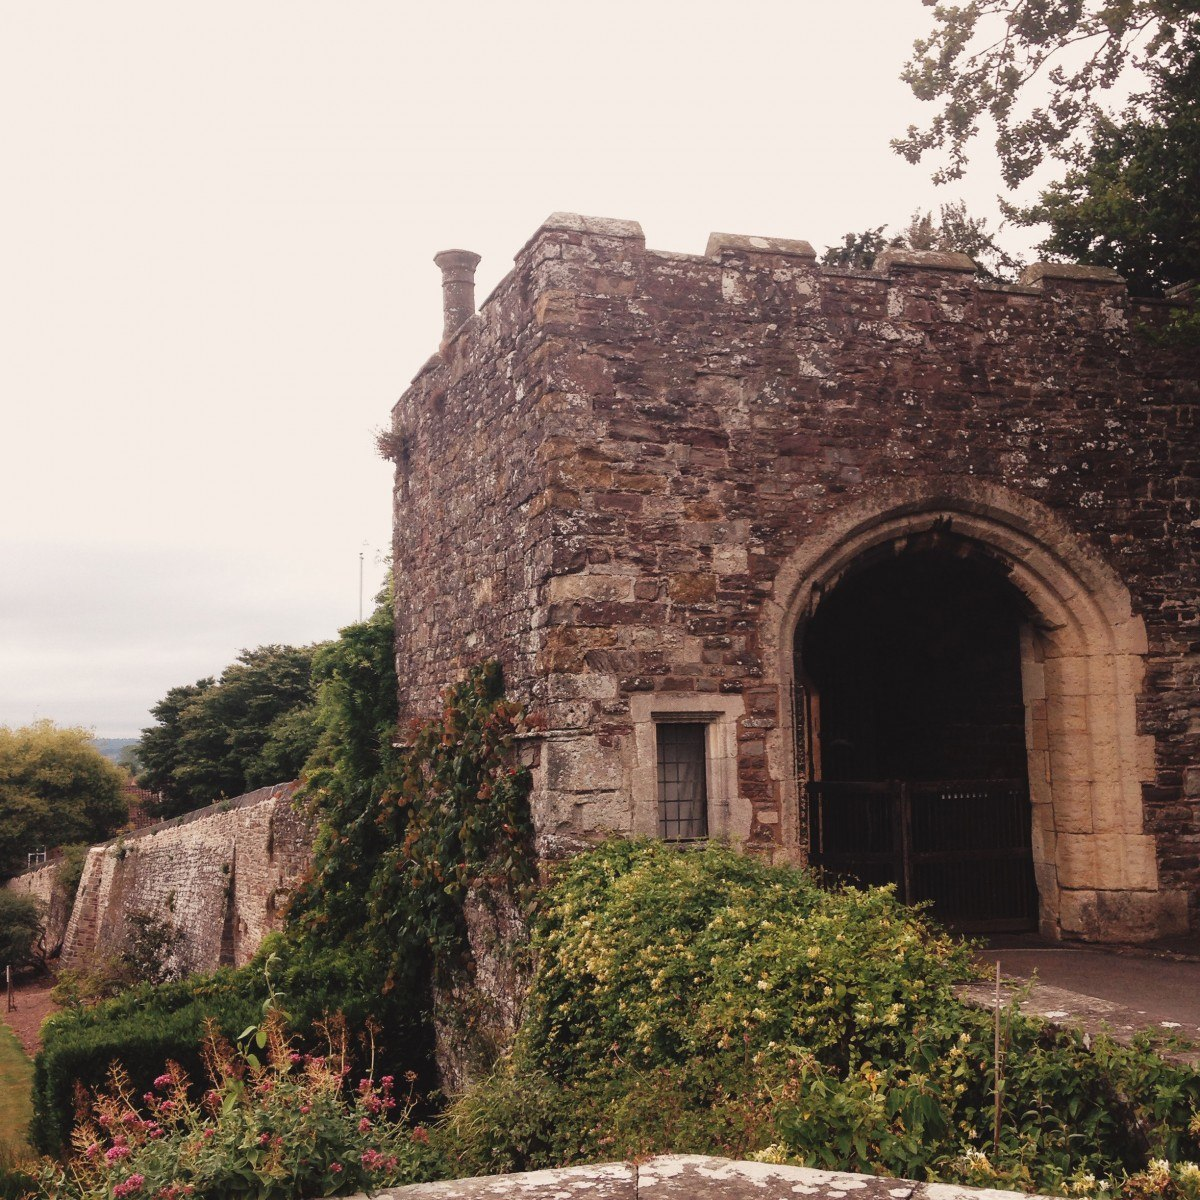 berkeley-castle-butress.jpg